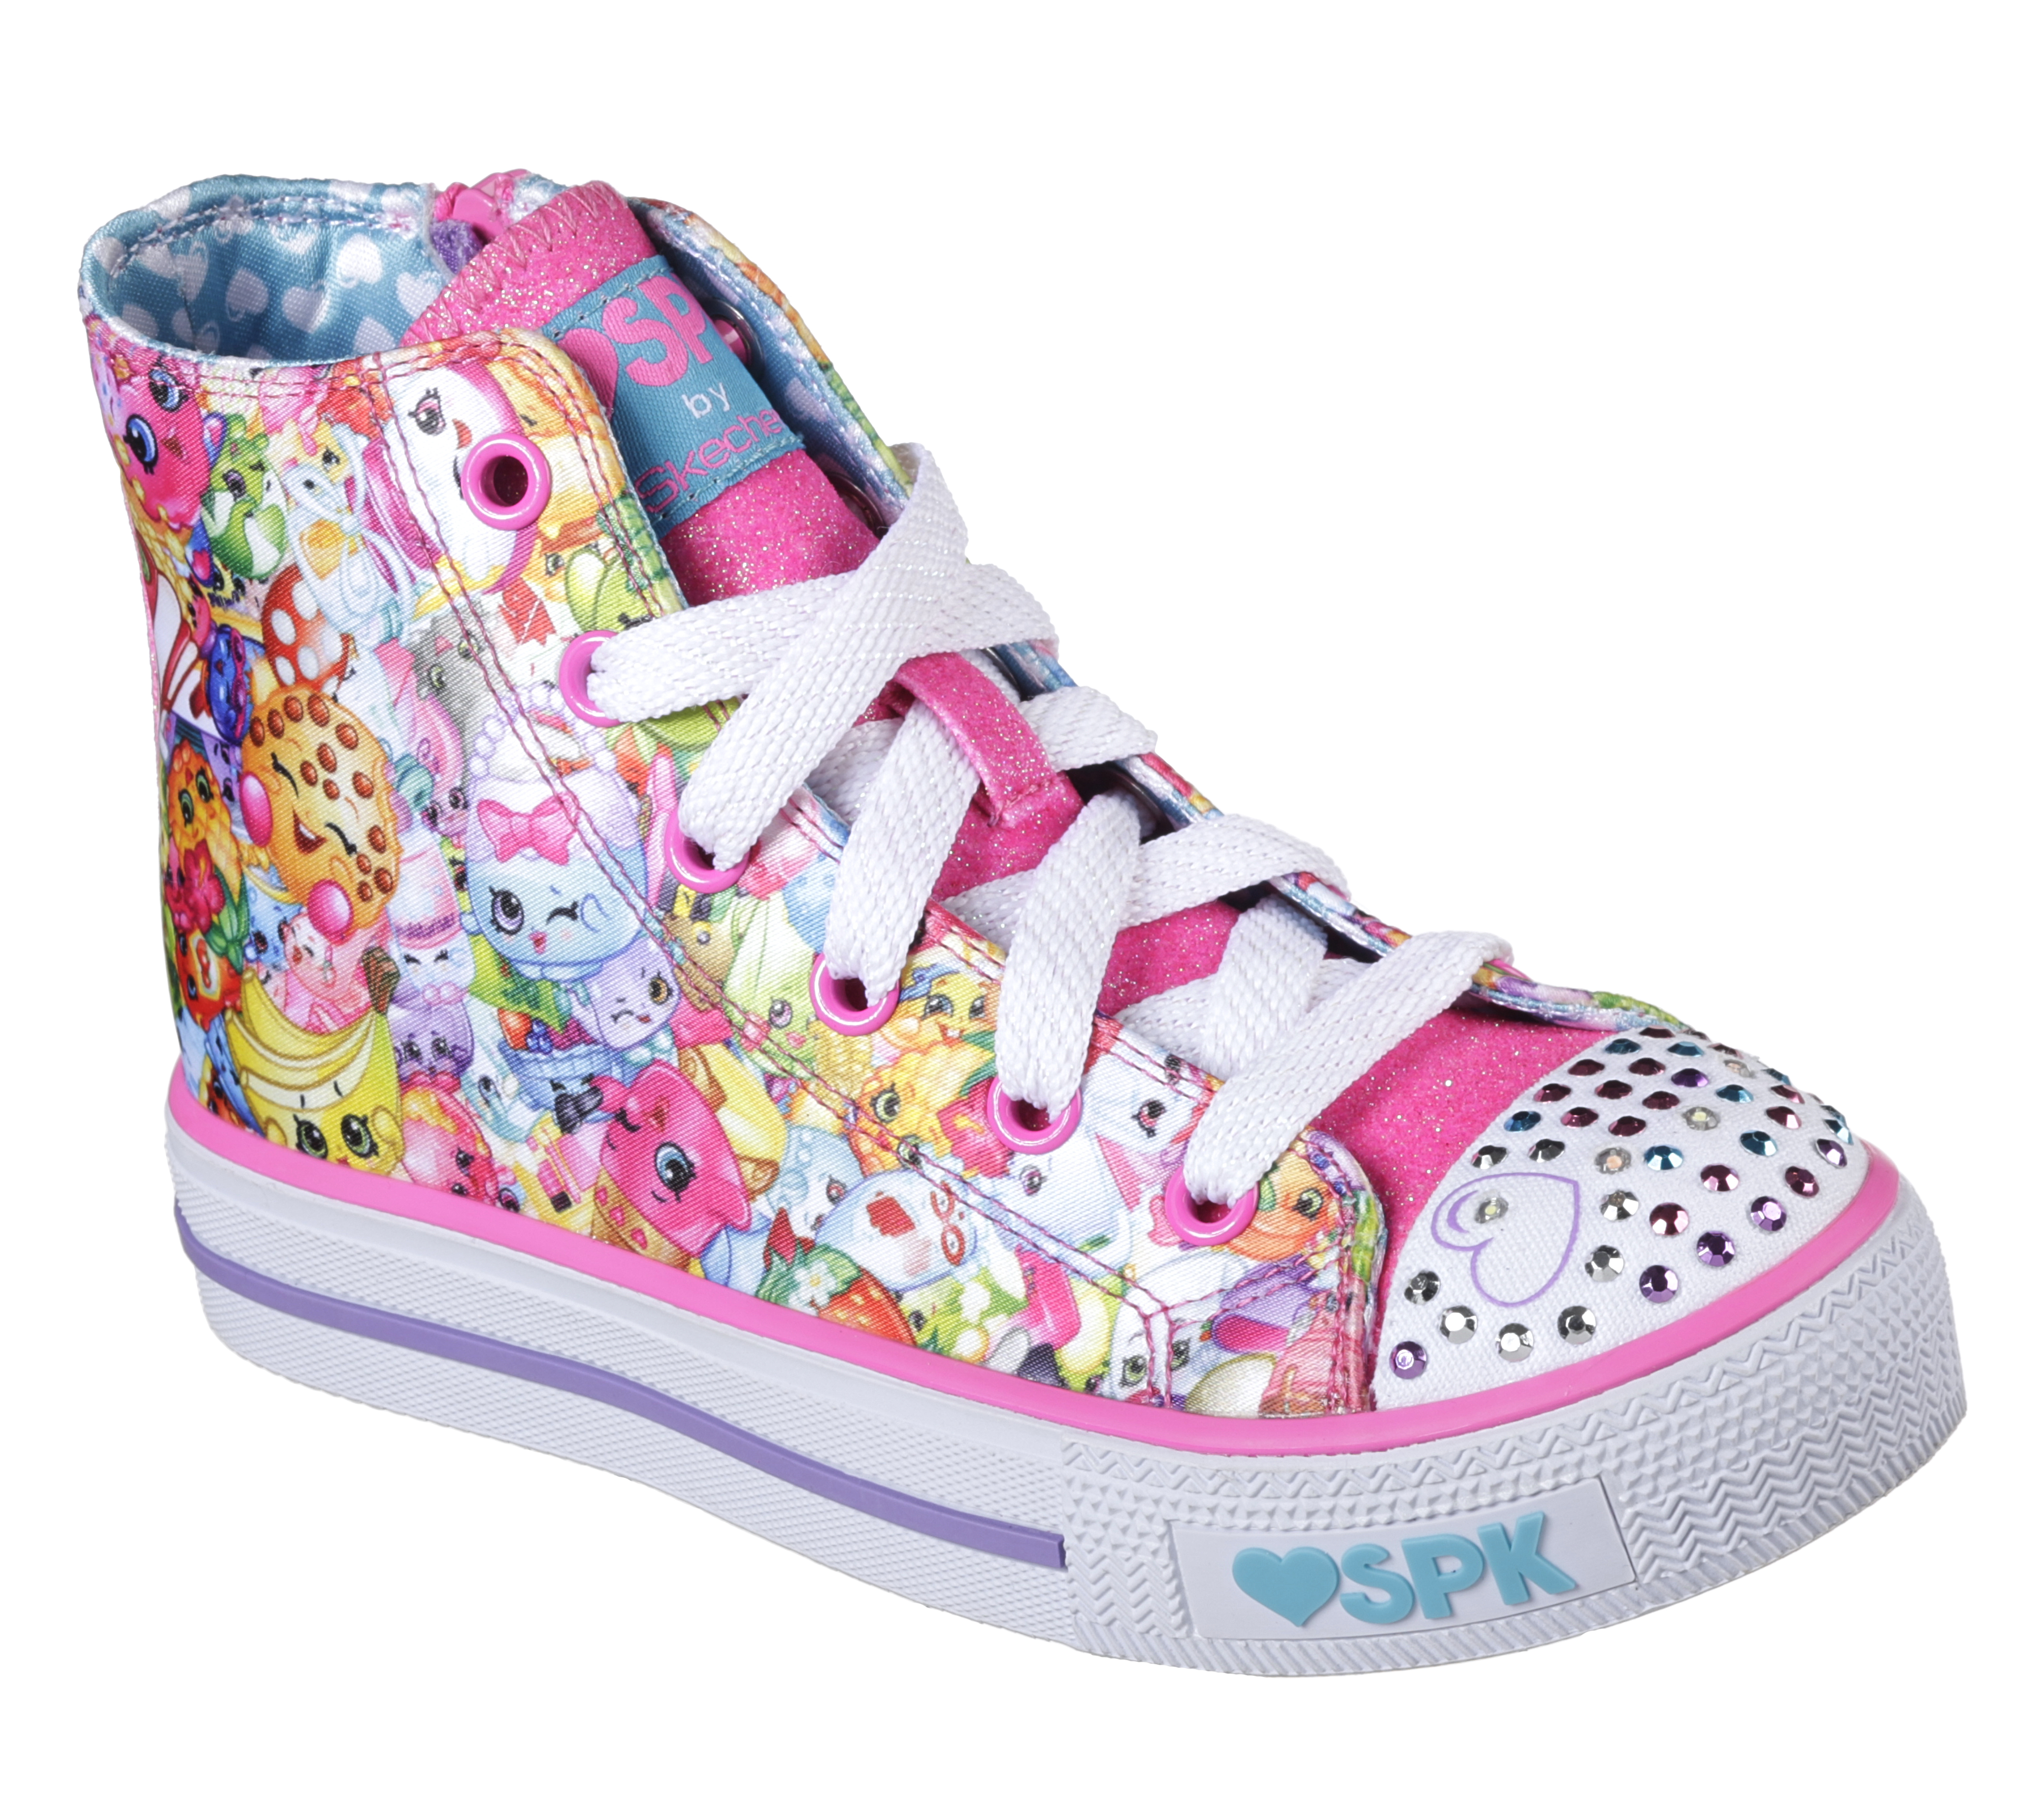 3e7a7a4376483 SKECHERS to Launch Shopkins Back-to-School Footwear Collection | Business  Wire